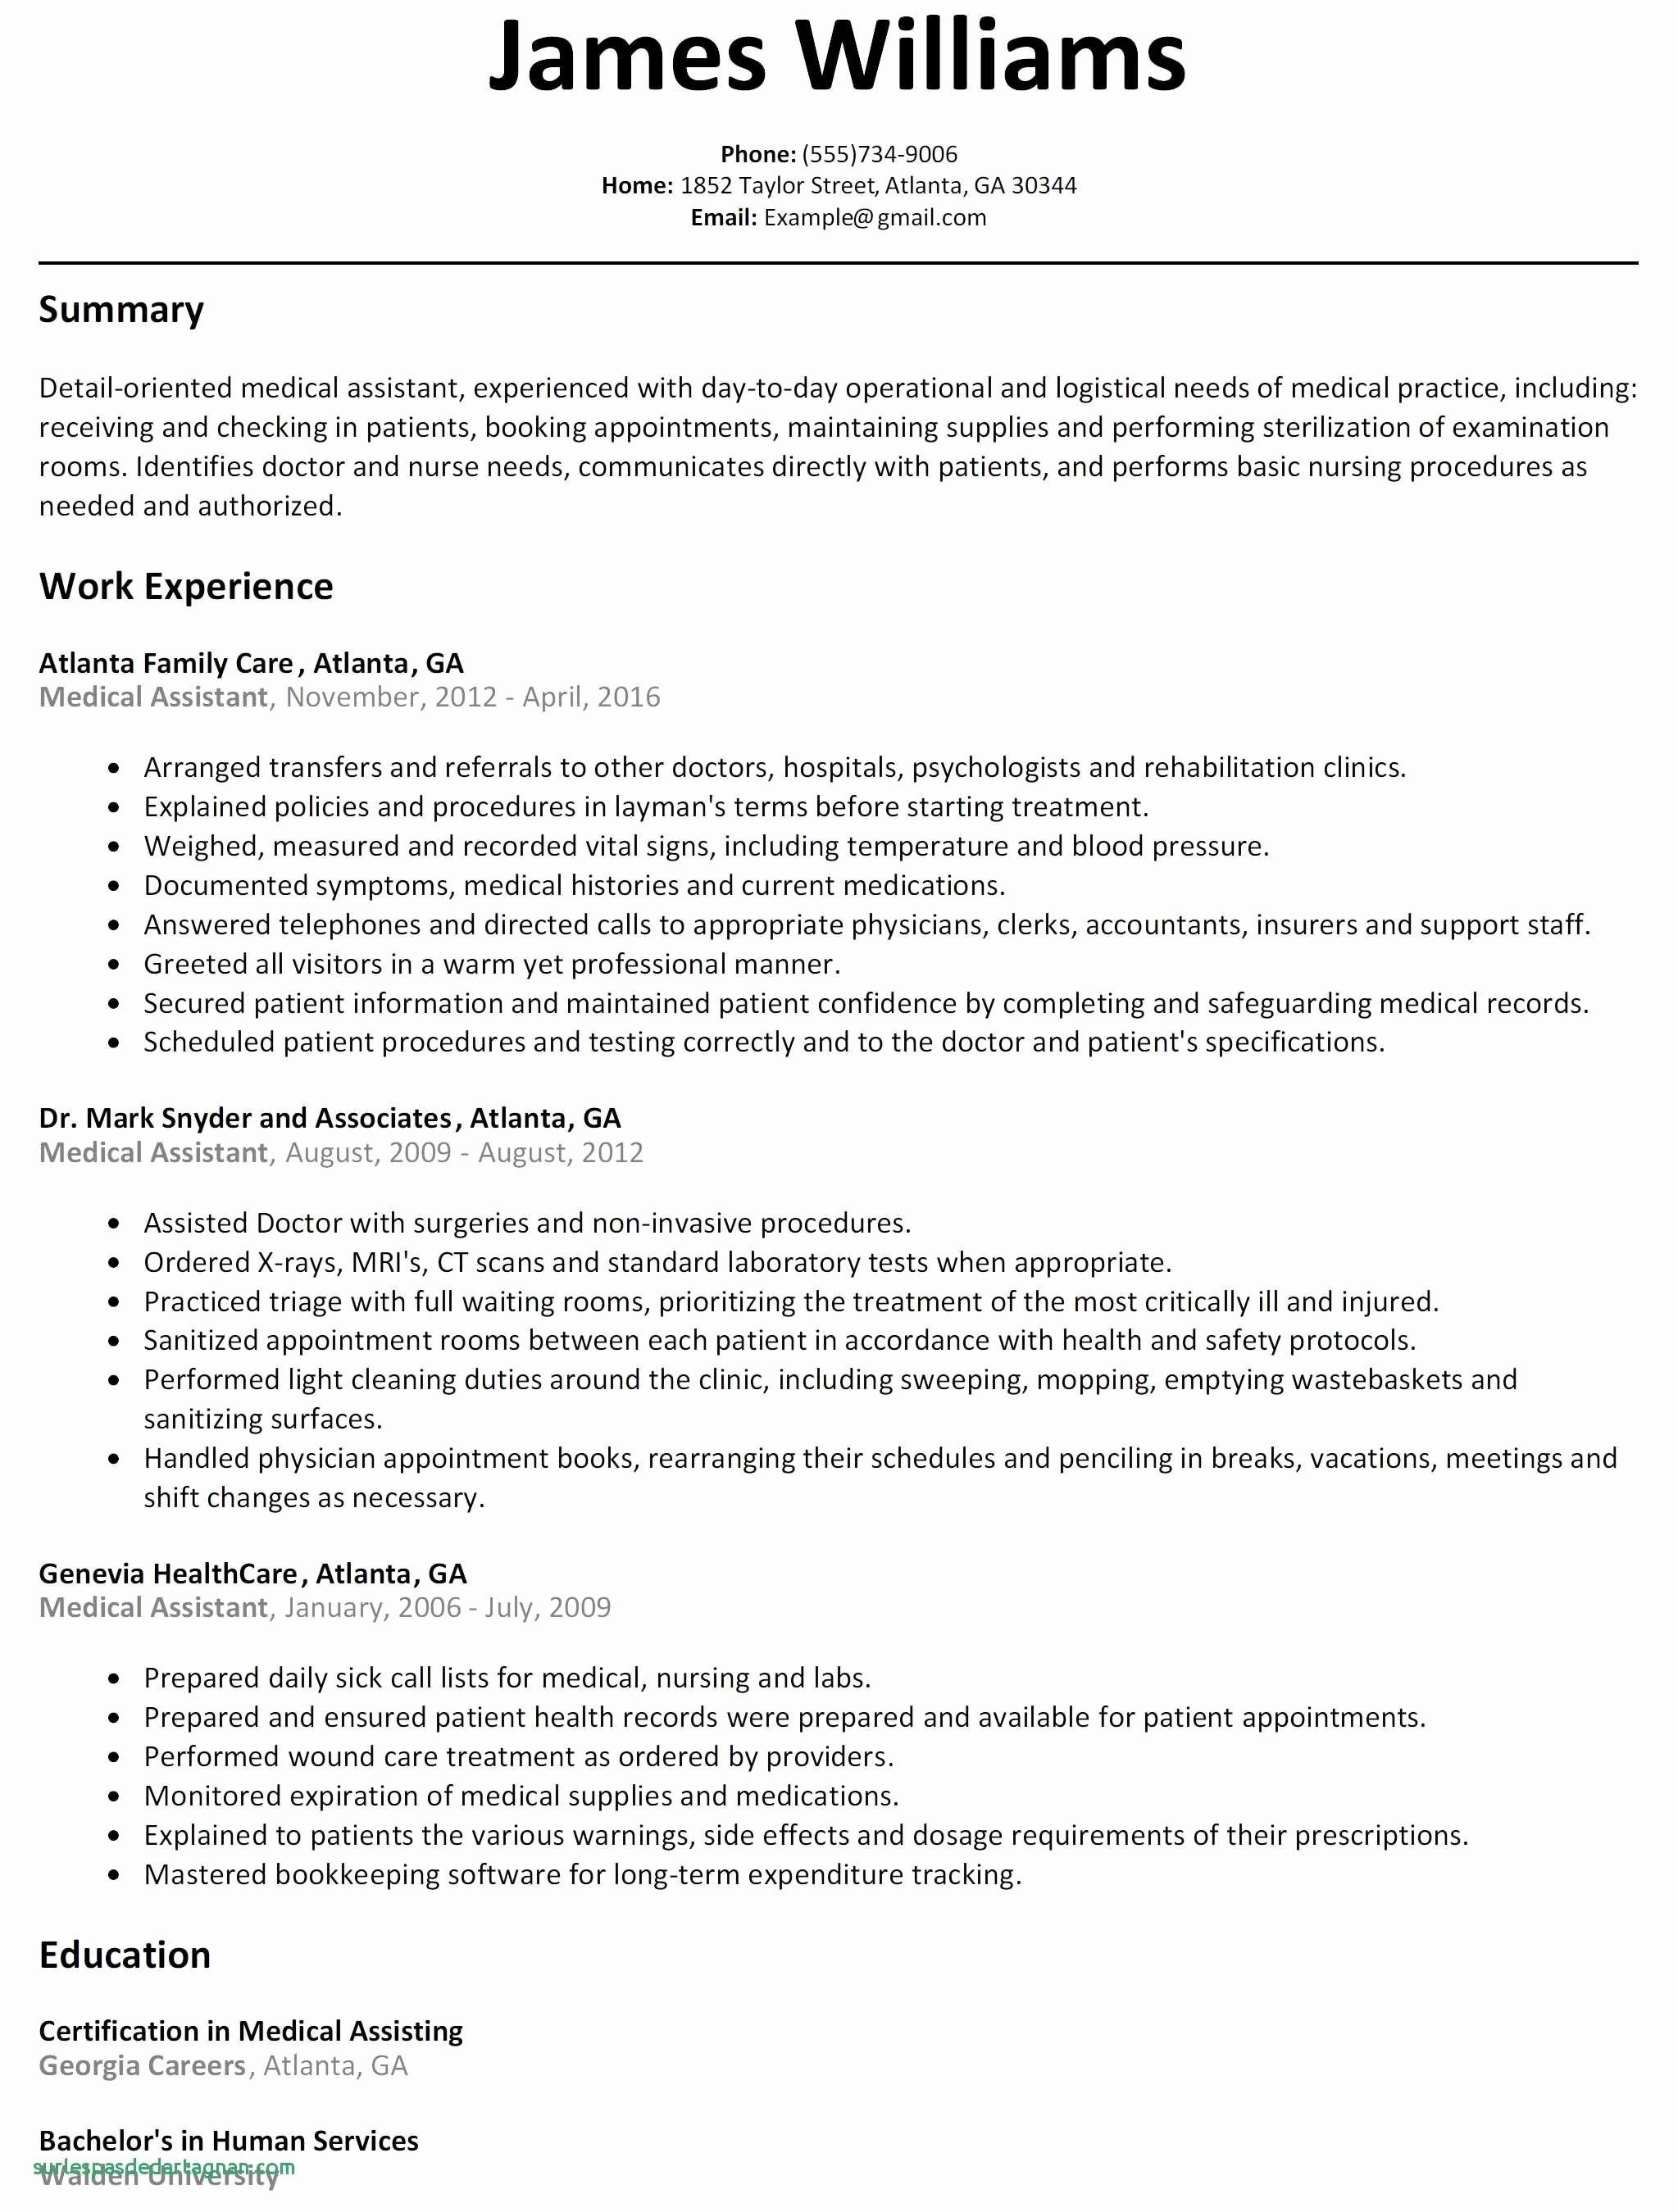 Peace Corps Resume Example - Most Effective Resume Tem New Cv Template to Print Unique Most